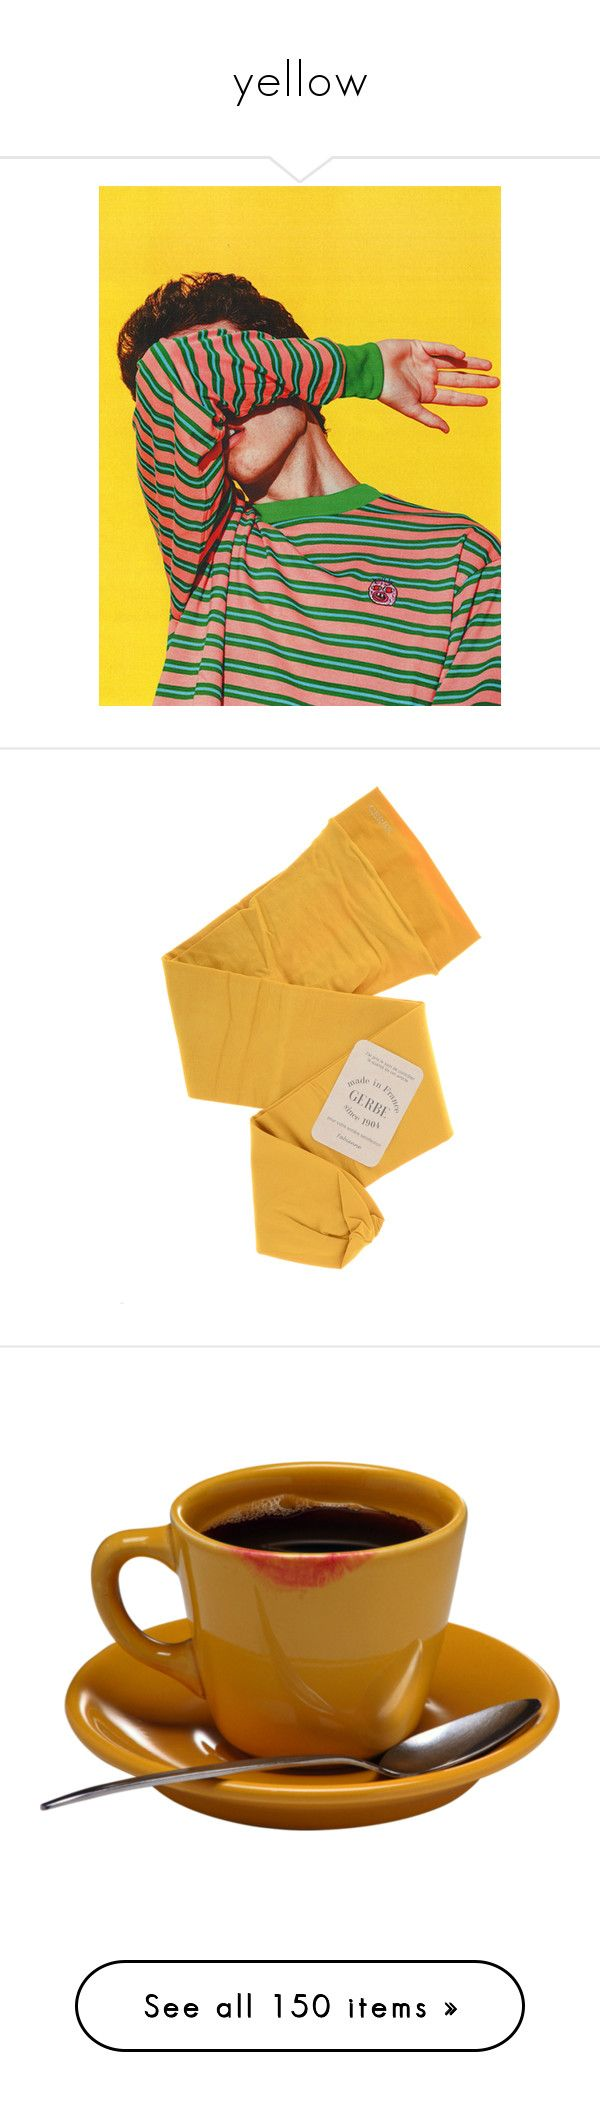 yellow by milktop on Polyvore featuring polyvore, yellow, Color, colour, aesthetic, people, pictures, women's fashion, clothing, intimates, hosiery, tights, gerbe, gerbe stockings, gerbe hosiery, gerbe tights, food, fillers, drinks, food and drink, coffee, backgrounds, skirts, bottoms, clothes - skirts, socks, accessories, socks/tights, opaque pantyhose, shiny stockings, shiny pantyhose, glossy pantyhose, glossy tights, tea, bags, tops, t-shirts, shirts, tees, drop shoulder t shirt, short…